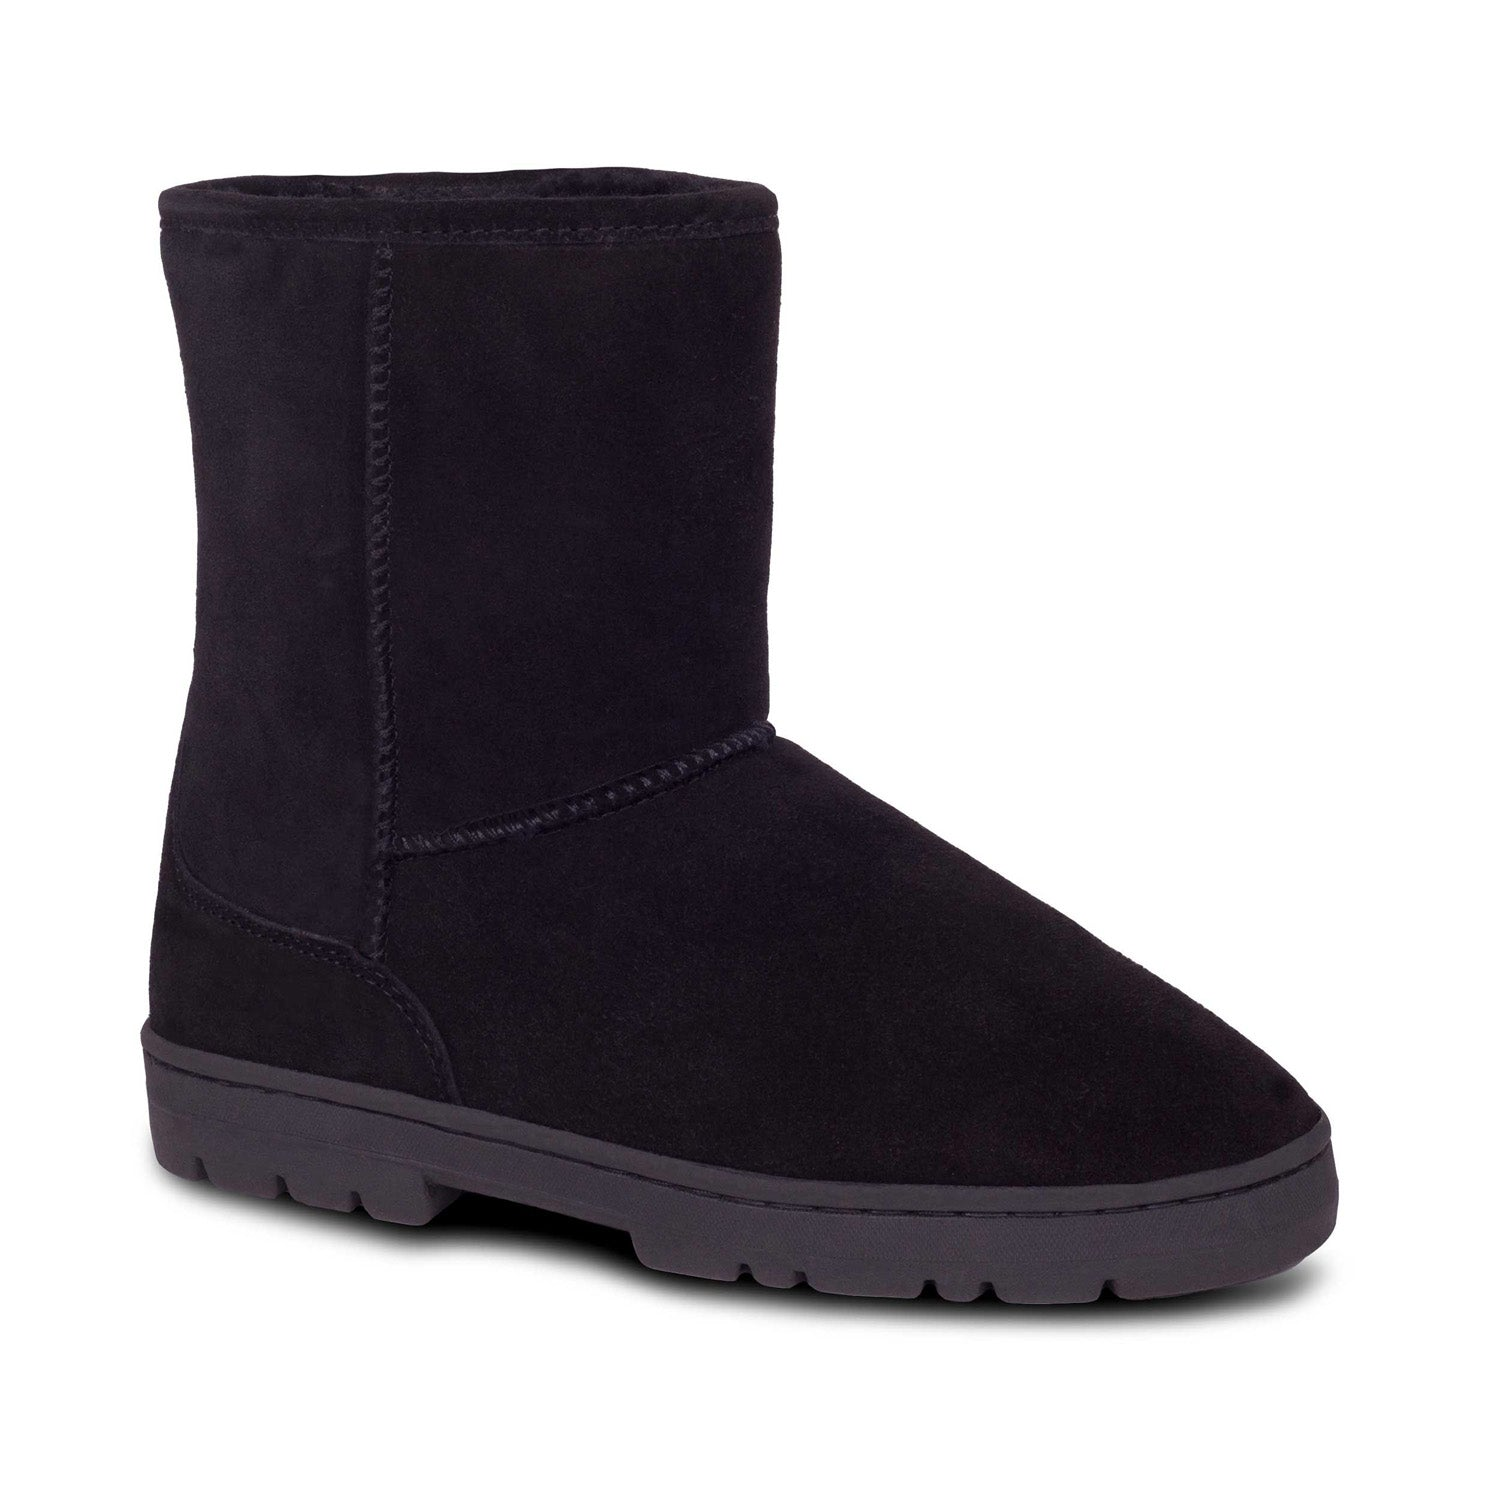 MEN'S 8 INCH SHEEPSKIN BOOT - Cloud Nine Sheepskin